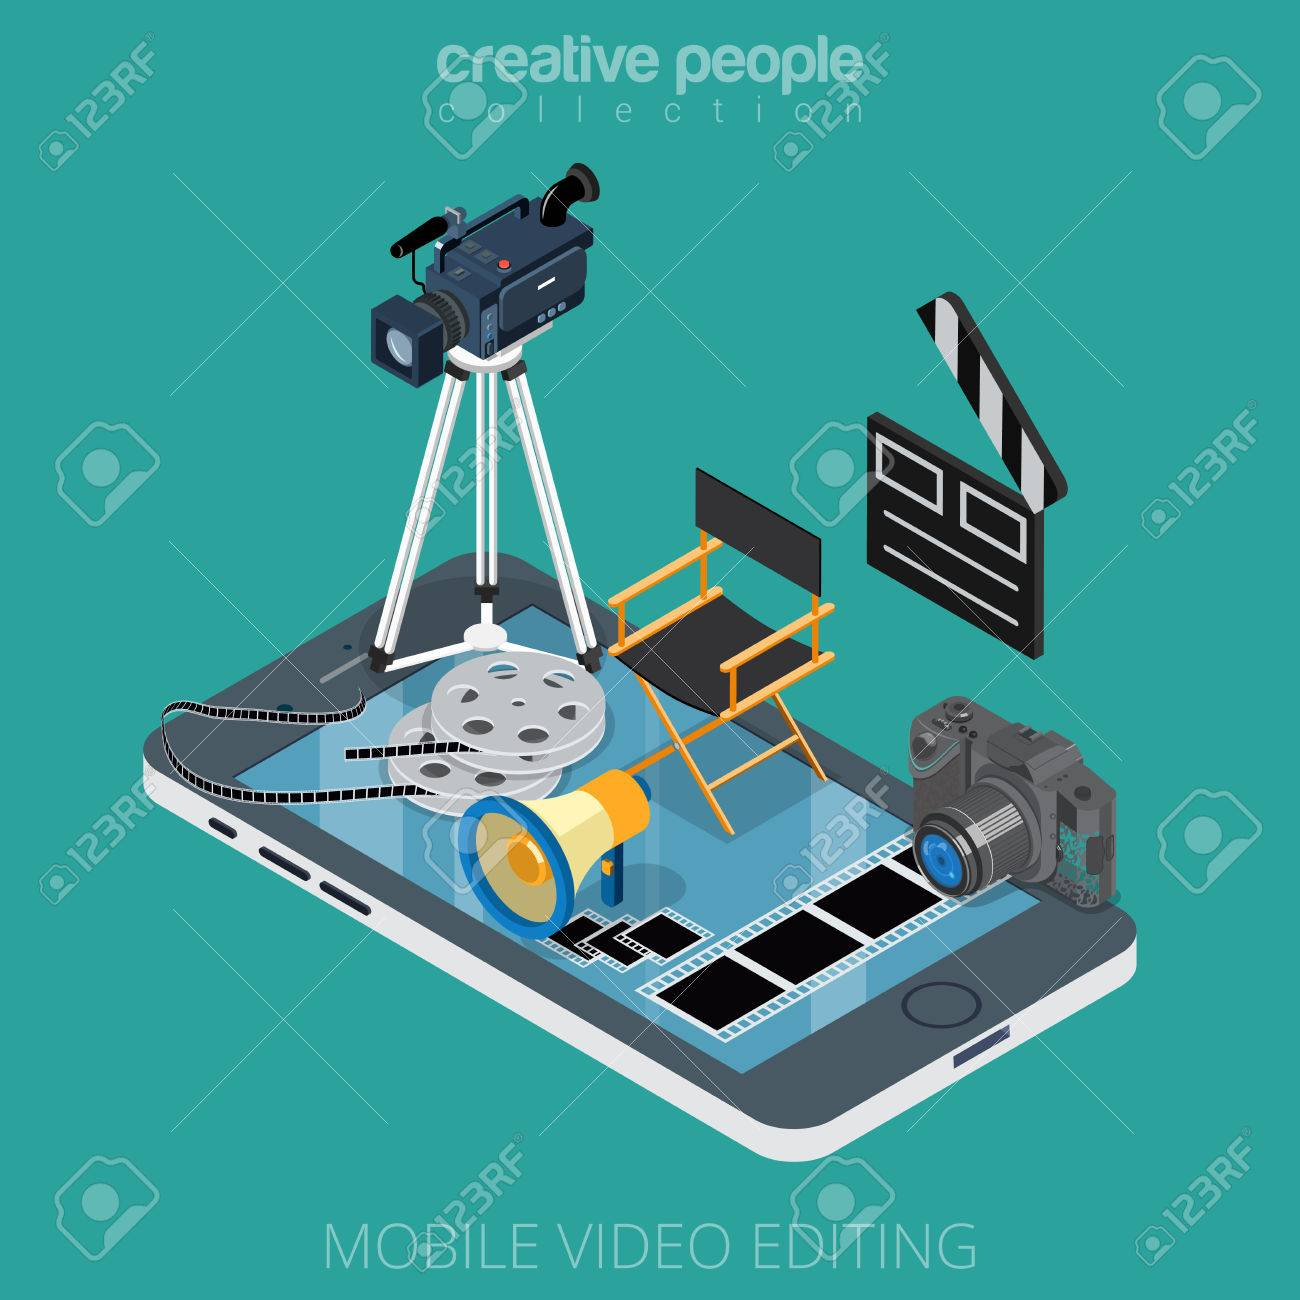 Flat isometric video content editing icons on smartphone vector illustration. 3d isometry motion media app concept. Camcorder, clapper, DSLR camera, film, director chair, filmstrip objects. - 63746199